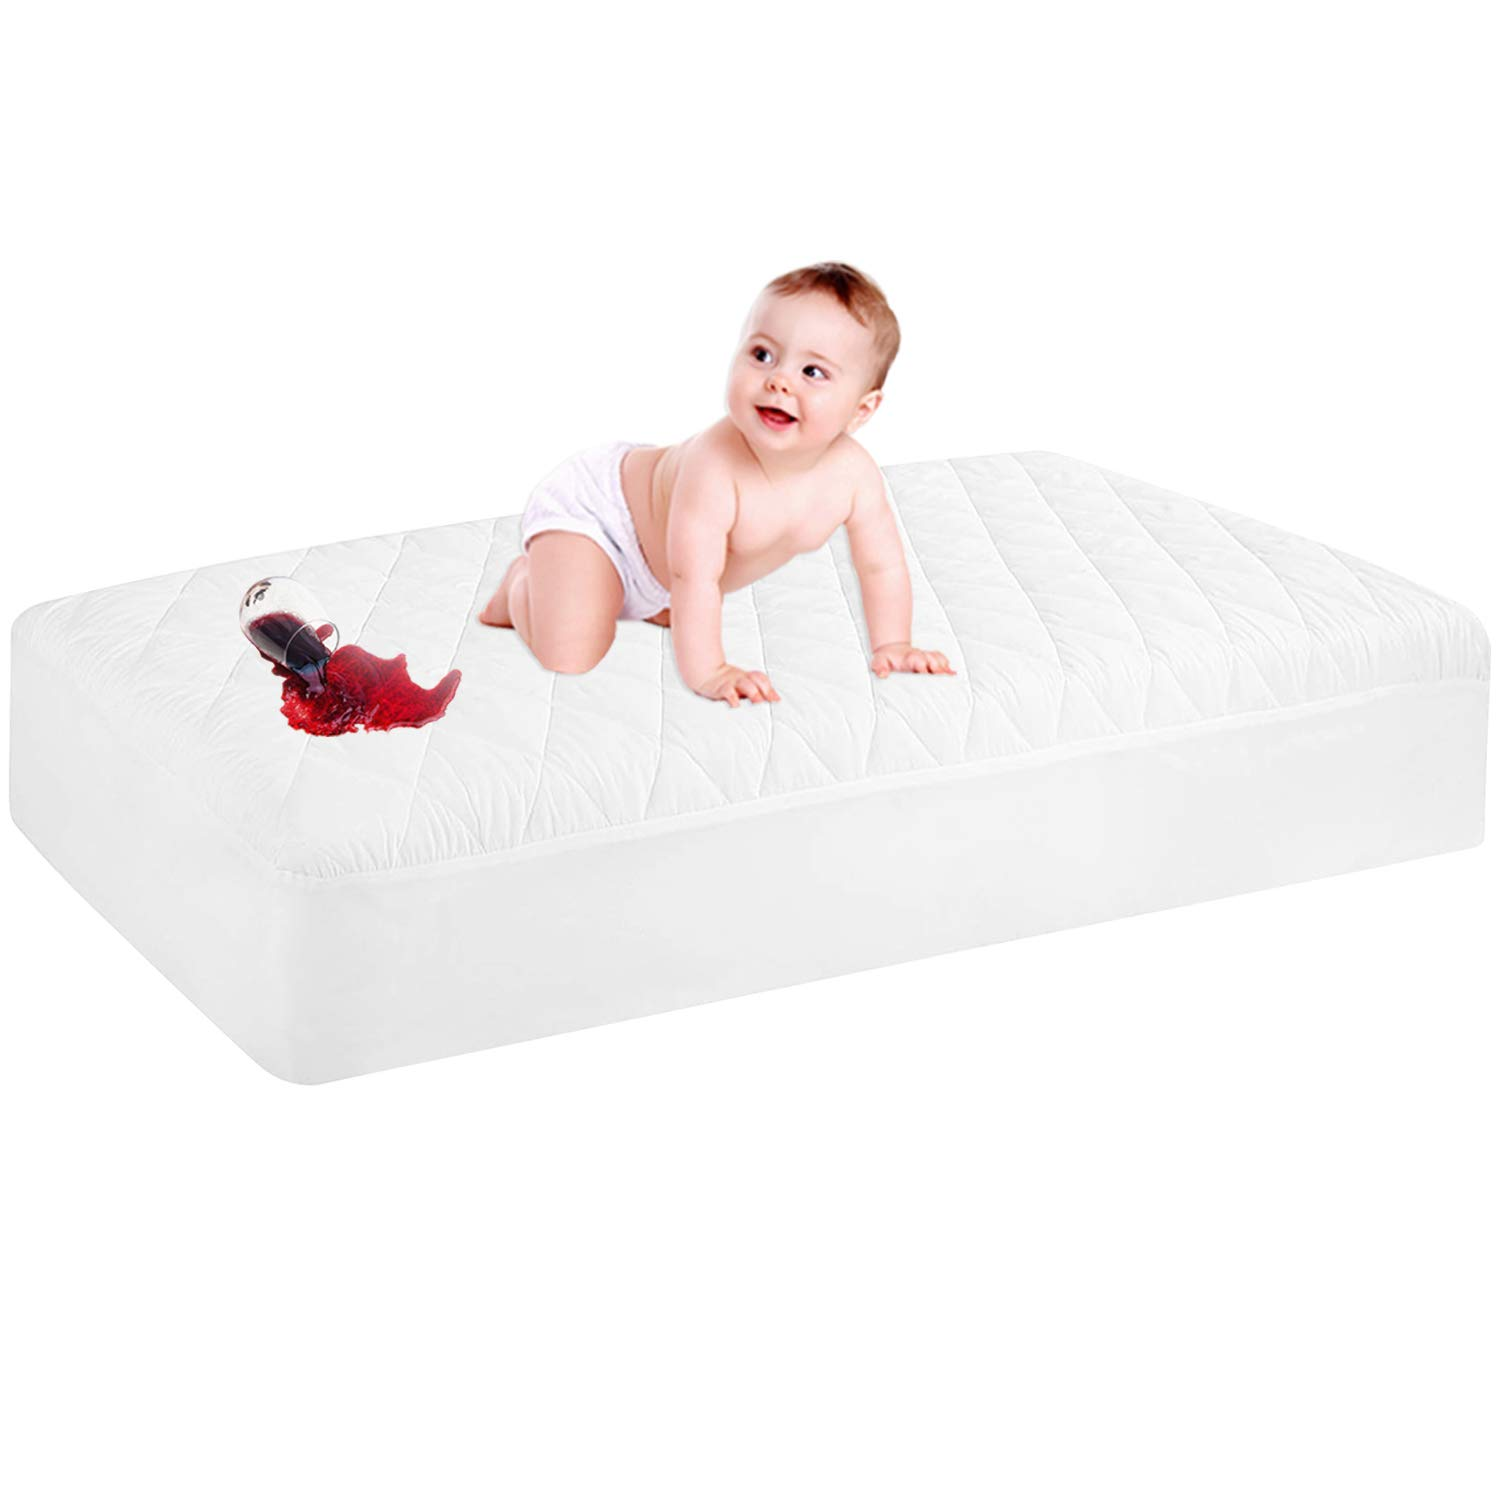 Waterproof Crib Mattress Protector Quilted Max San Jose Mall 43% OFF Baby Fitted